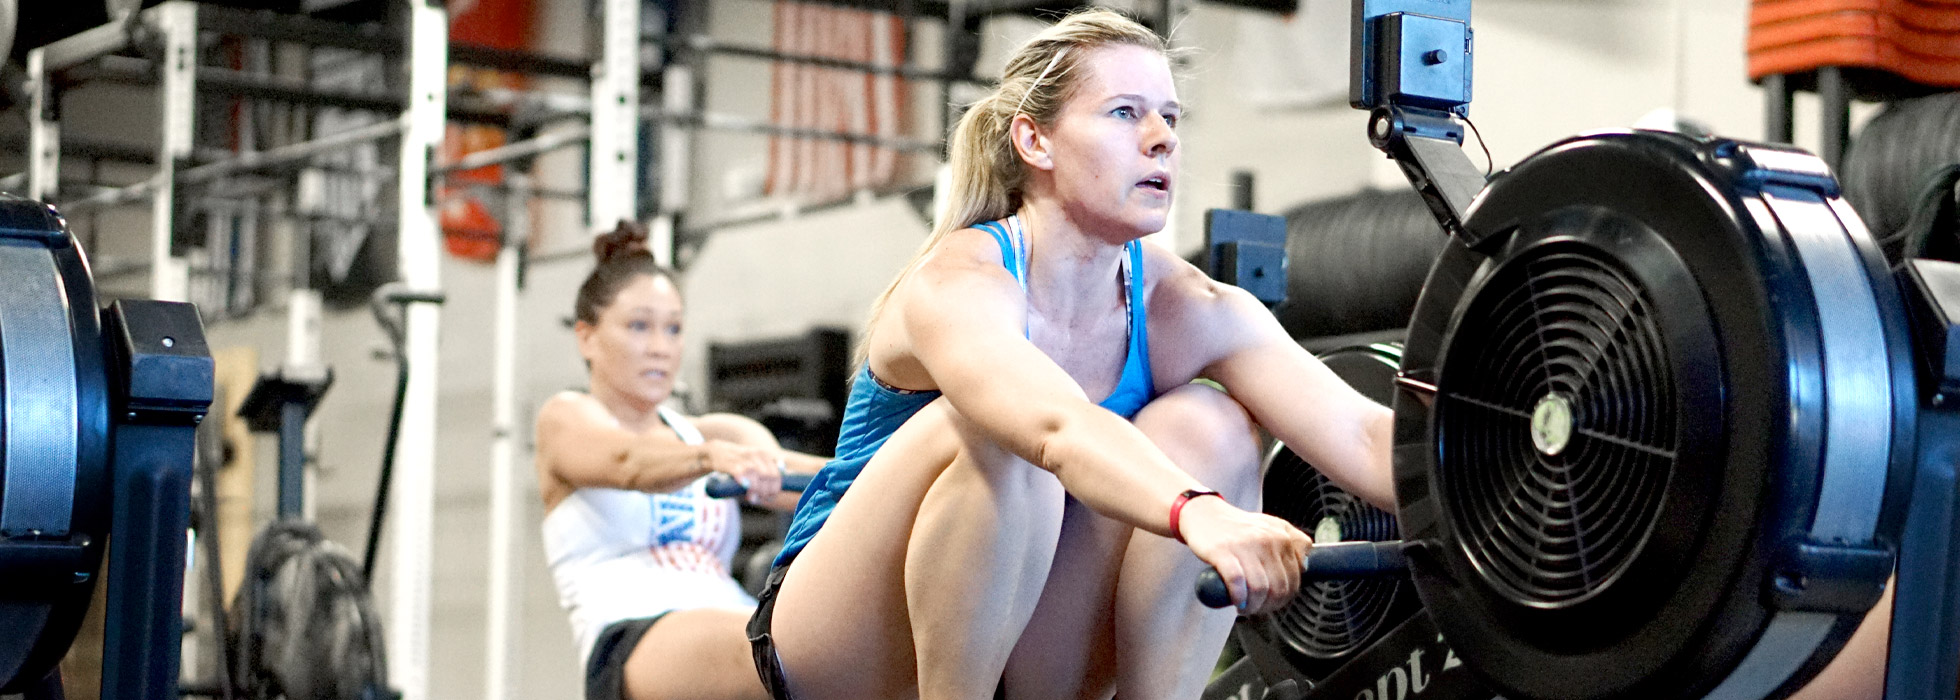 Top 5 Best Gyms To Join Near You In Phoenix